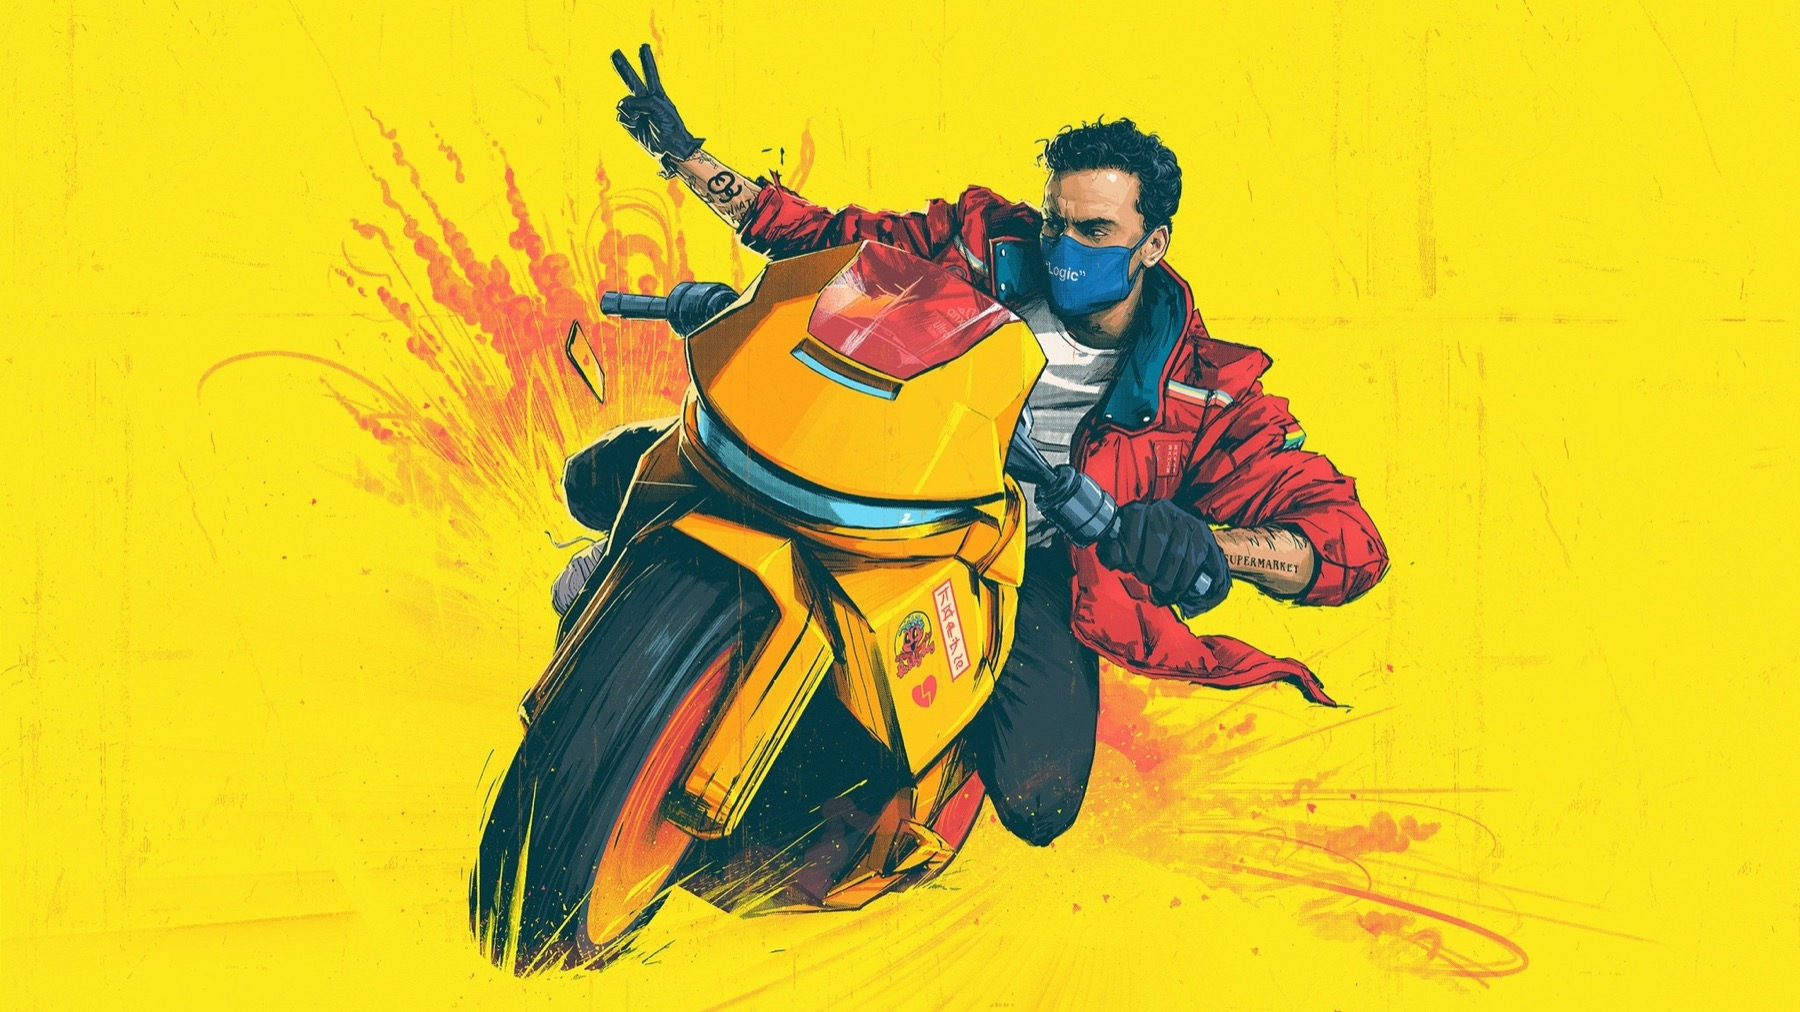 Drawing on a man on a motorcycle for Logic: The Confessions of a Dangerous Mind Tour in Chicago